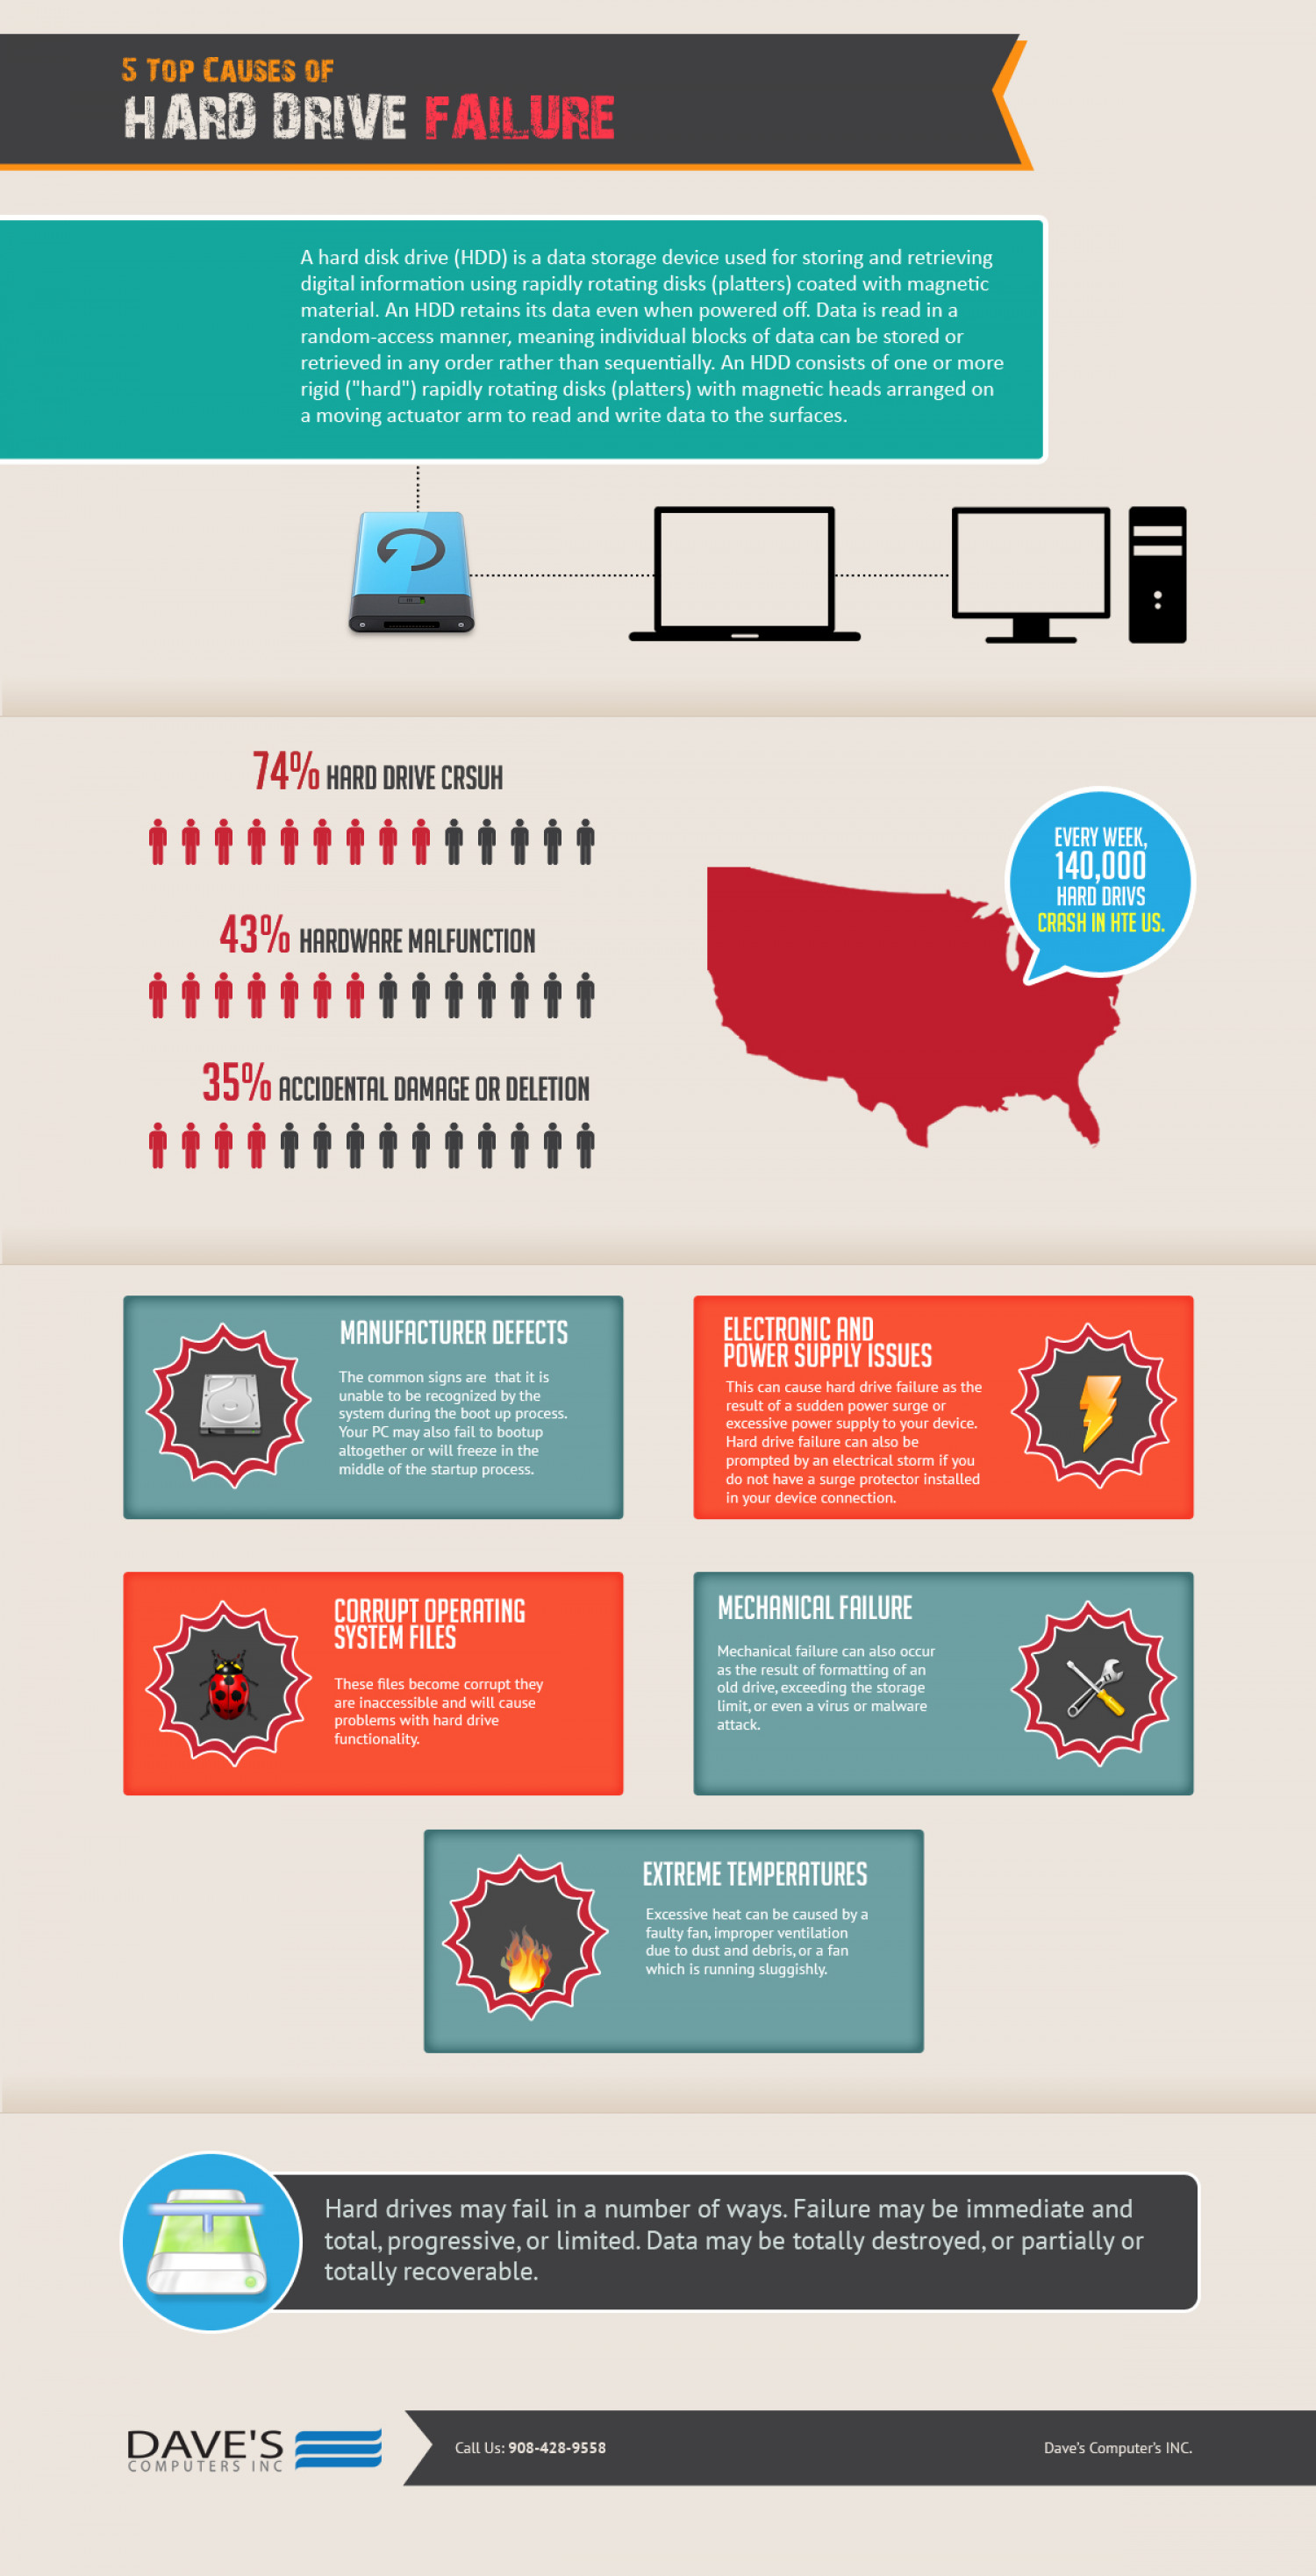 5 Top Causes Of Hard Drive Failure Infographic